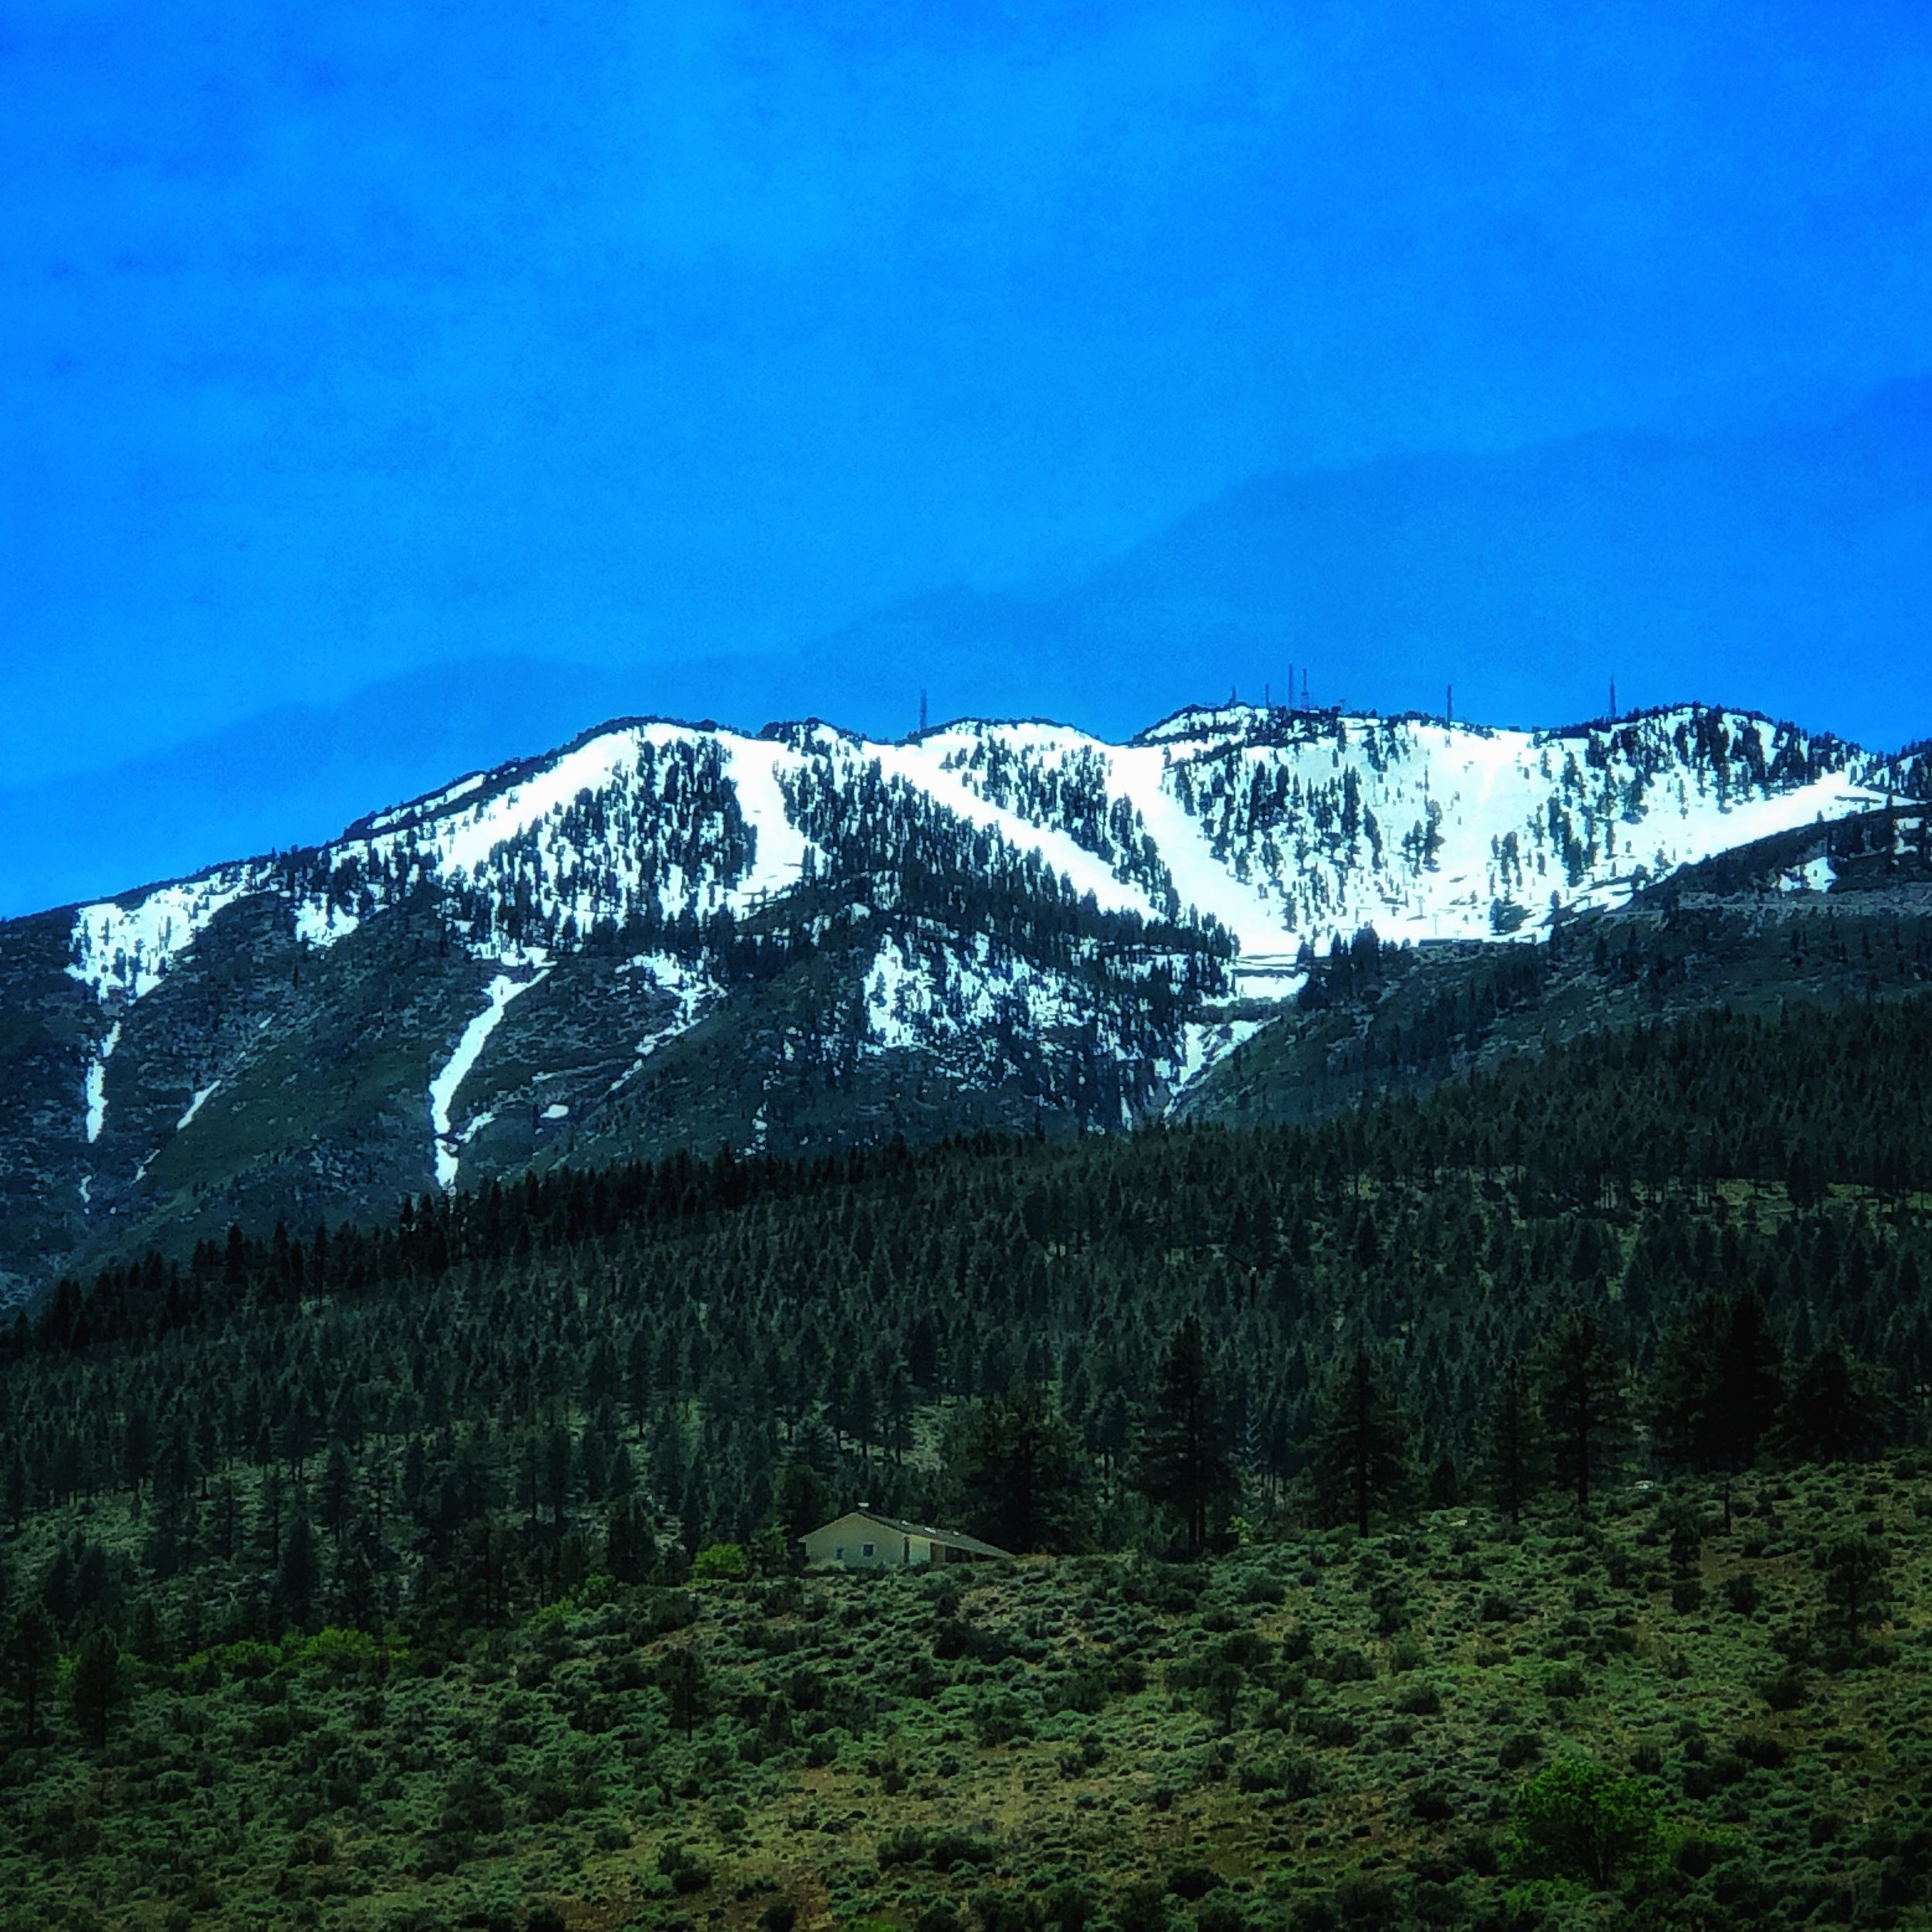 The Beauty of Nevada   Driving towards Davis Camp and enjoying the view of  Mt Rose Ski Resort  on the way. The camp is behind the south face of the hill has it's own awesome trails. We do plan on hiking Mt Rose soon, once the snow melt allows for safer passage.